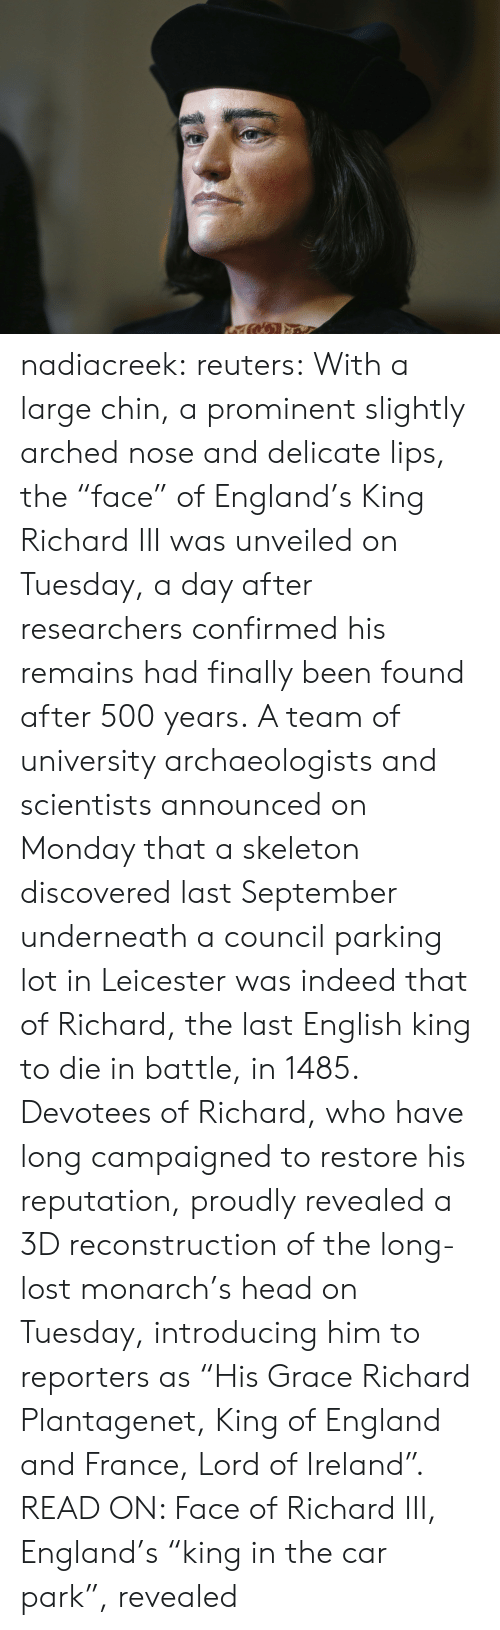 "Confirmed: nadiacreek: reuters:  With a large chin, a prominent slightly arched nose and delicate lips, the ""face"" of England's King Richard III was unveiled on Tuesday, a day after researchers confirmed his remains had finally been found after 500 years. A team of university archaeologists and scientists announced on Monday that a skeleton discovered last September underneath a council parking lot in Leicester was indeed that of Richard, the last English king to die in battle, in 1485. Devotees of Richard, who have long campaigned to restore his reputation, proudly revealed a 3D reconstruction of the long-lost monarch's head on Tuesday, introducing him to reporters as ""His Grace Richard Plantagenet, King of England and France, Lord of Ireland"". READ ON: Face of Richard III, England's ""king in the car park"", revealed"